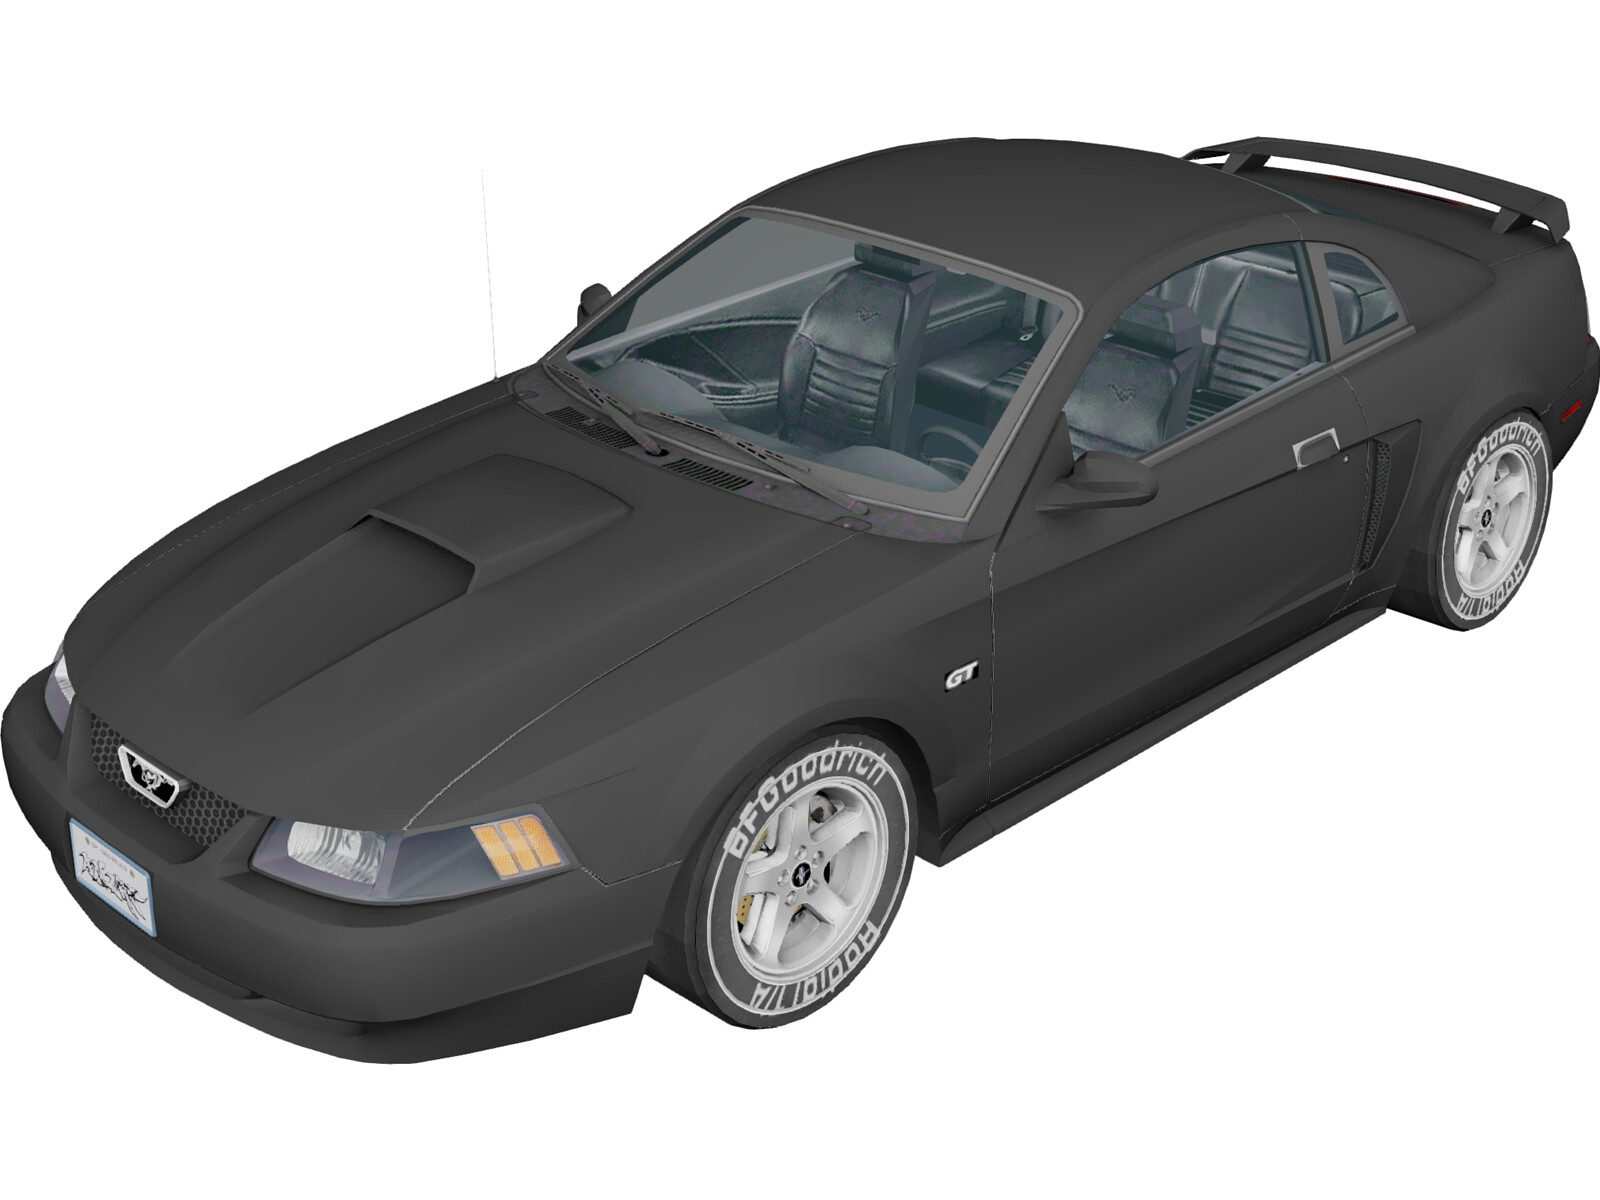 Ford Mustang GT (2000)